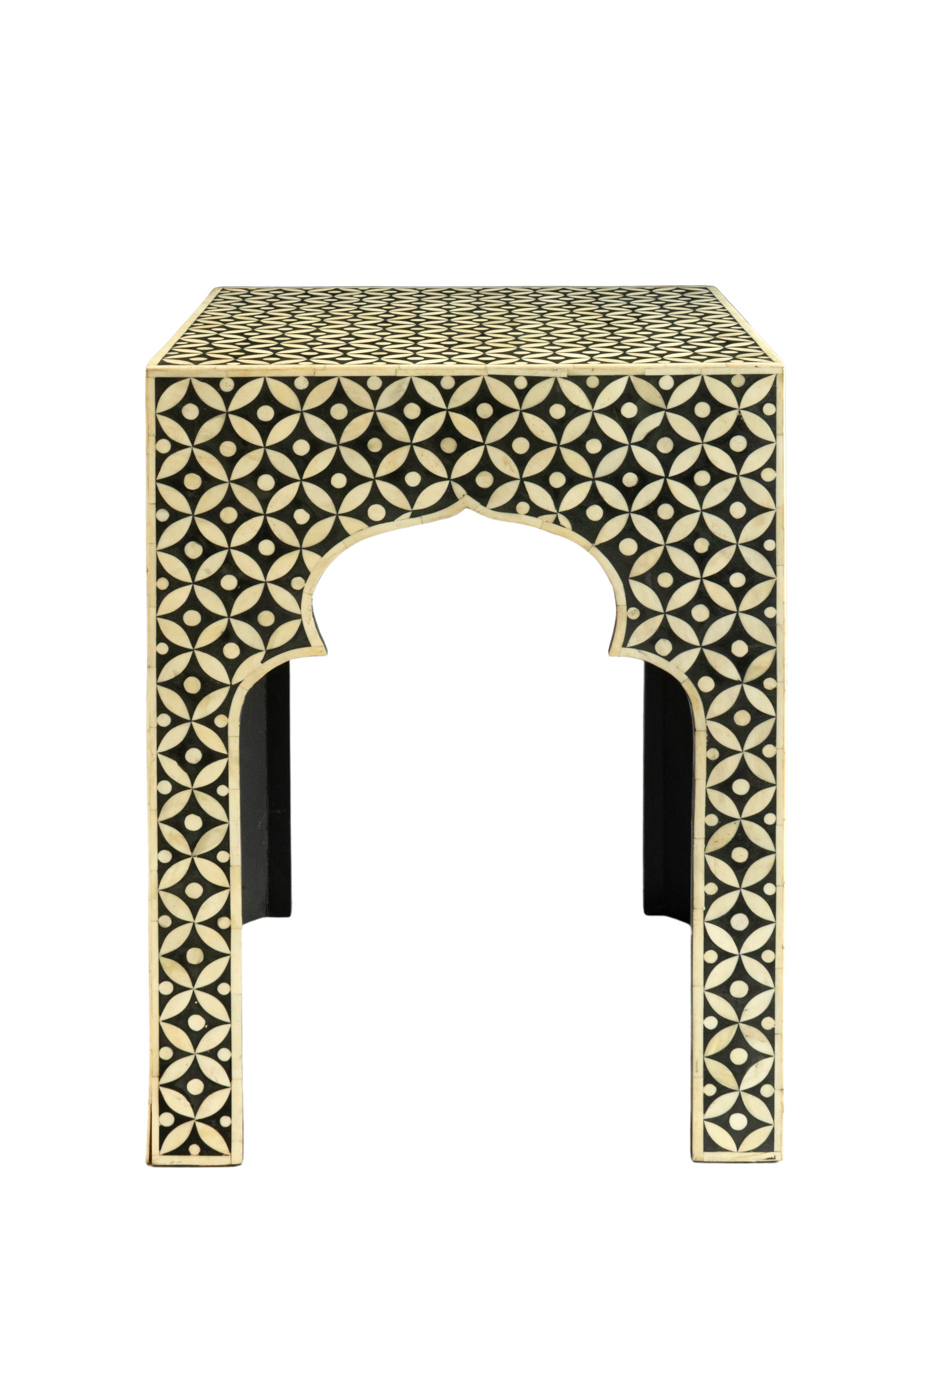 Alhambra side table design in wood and bone